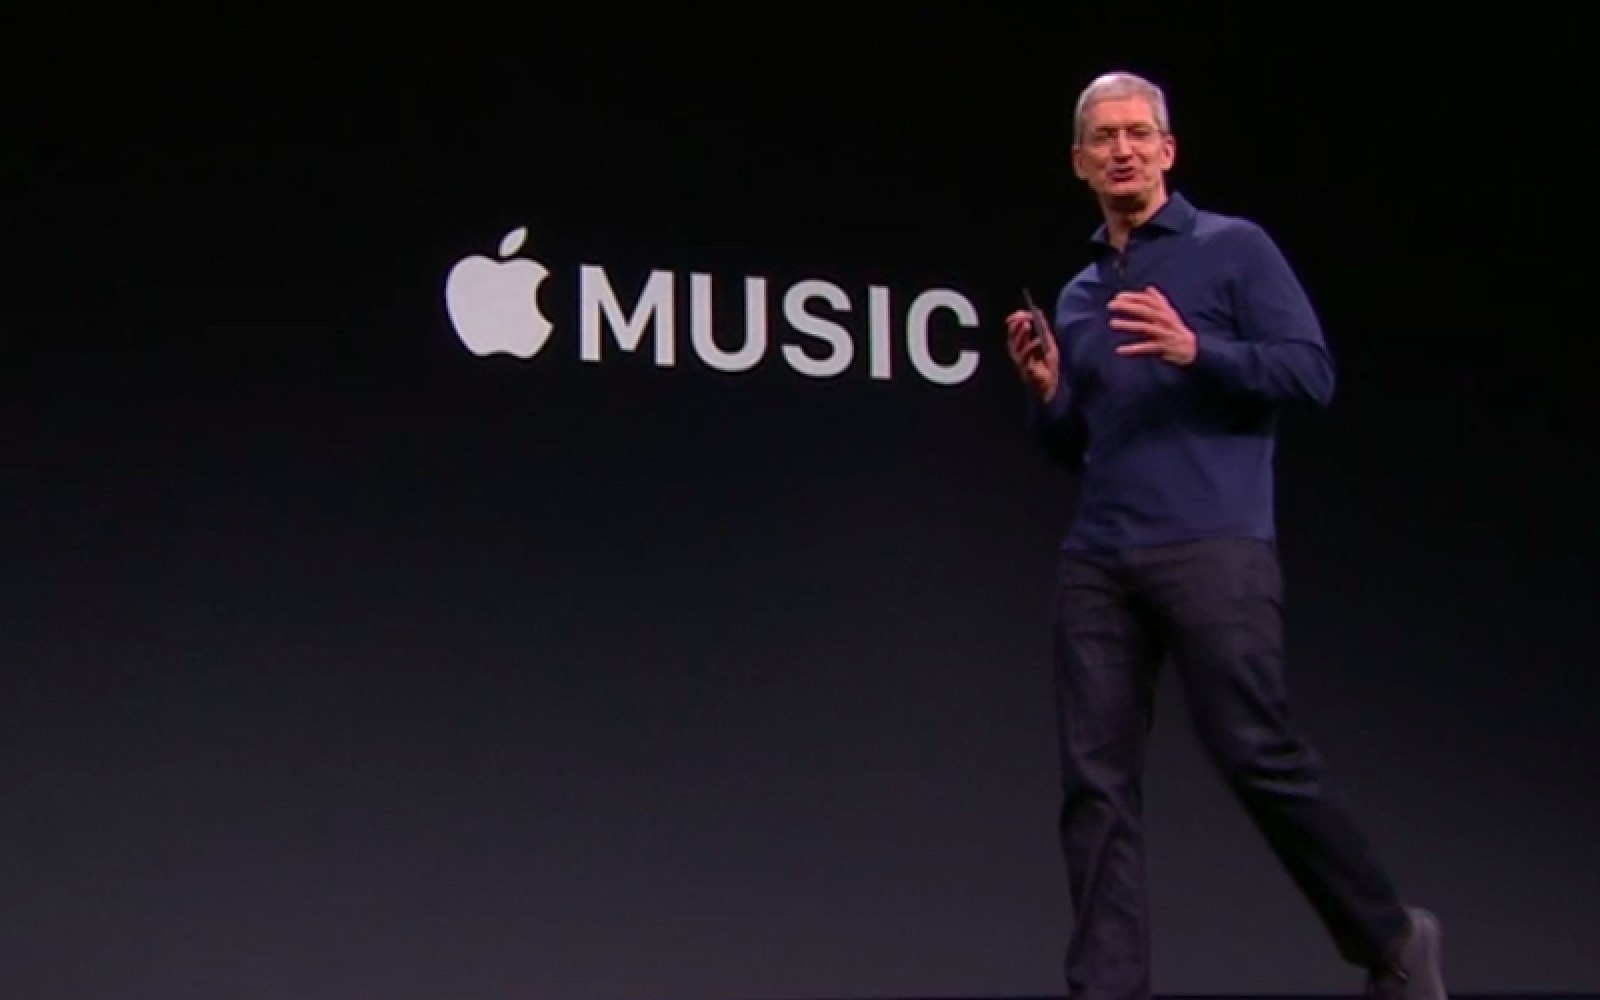 Site claims to be offering Apple Music for Android beta access